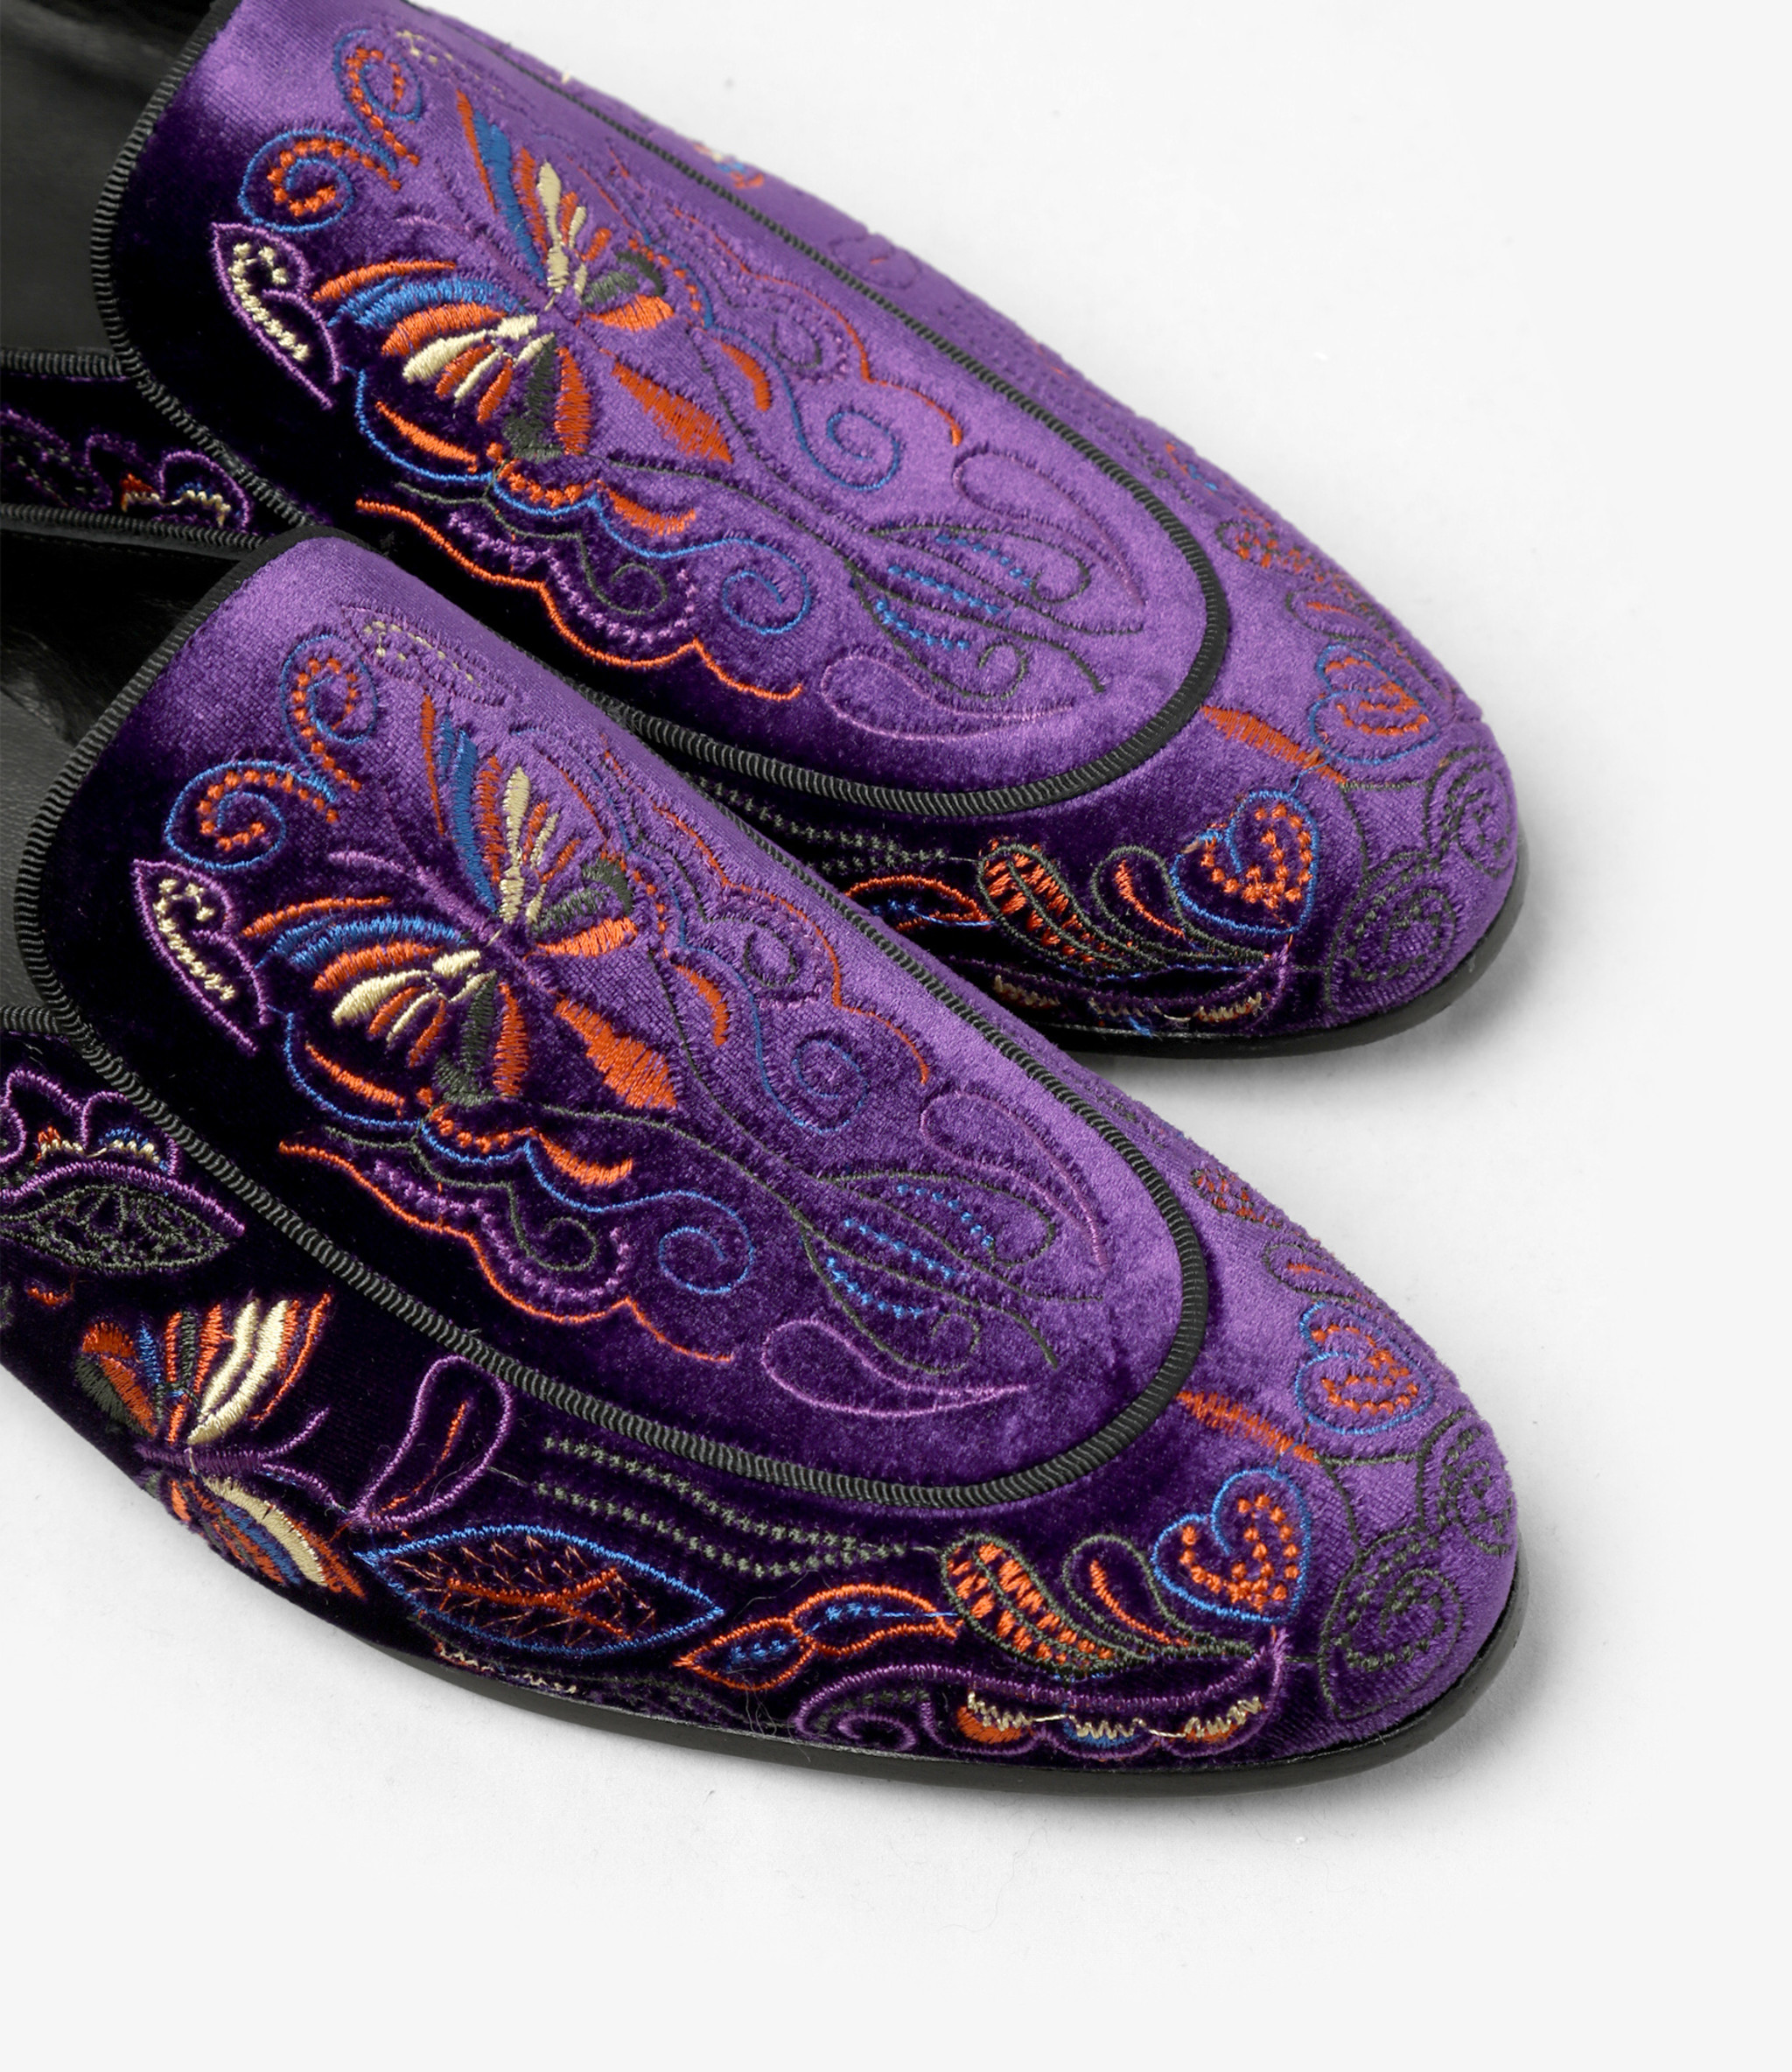 Needles Velvet Mule - Papillon Embroidery - Purple